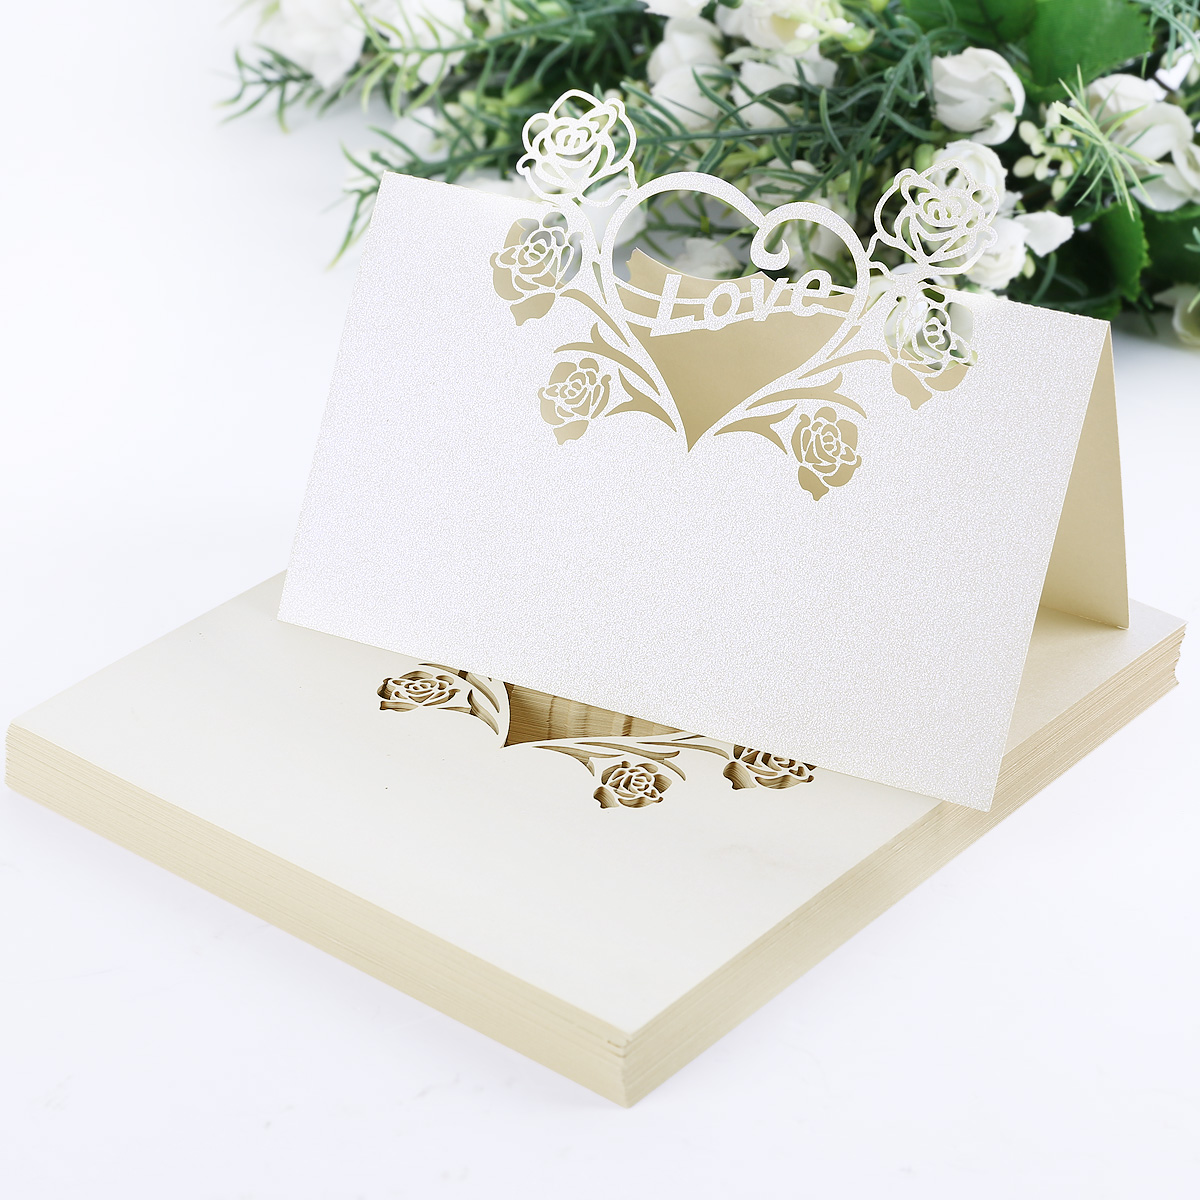 25 30 50 Name Place Cards Wedding Guest Names Table CardsFavorLaser Cut Pearl